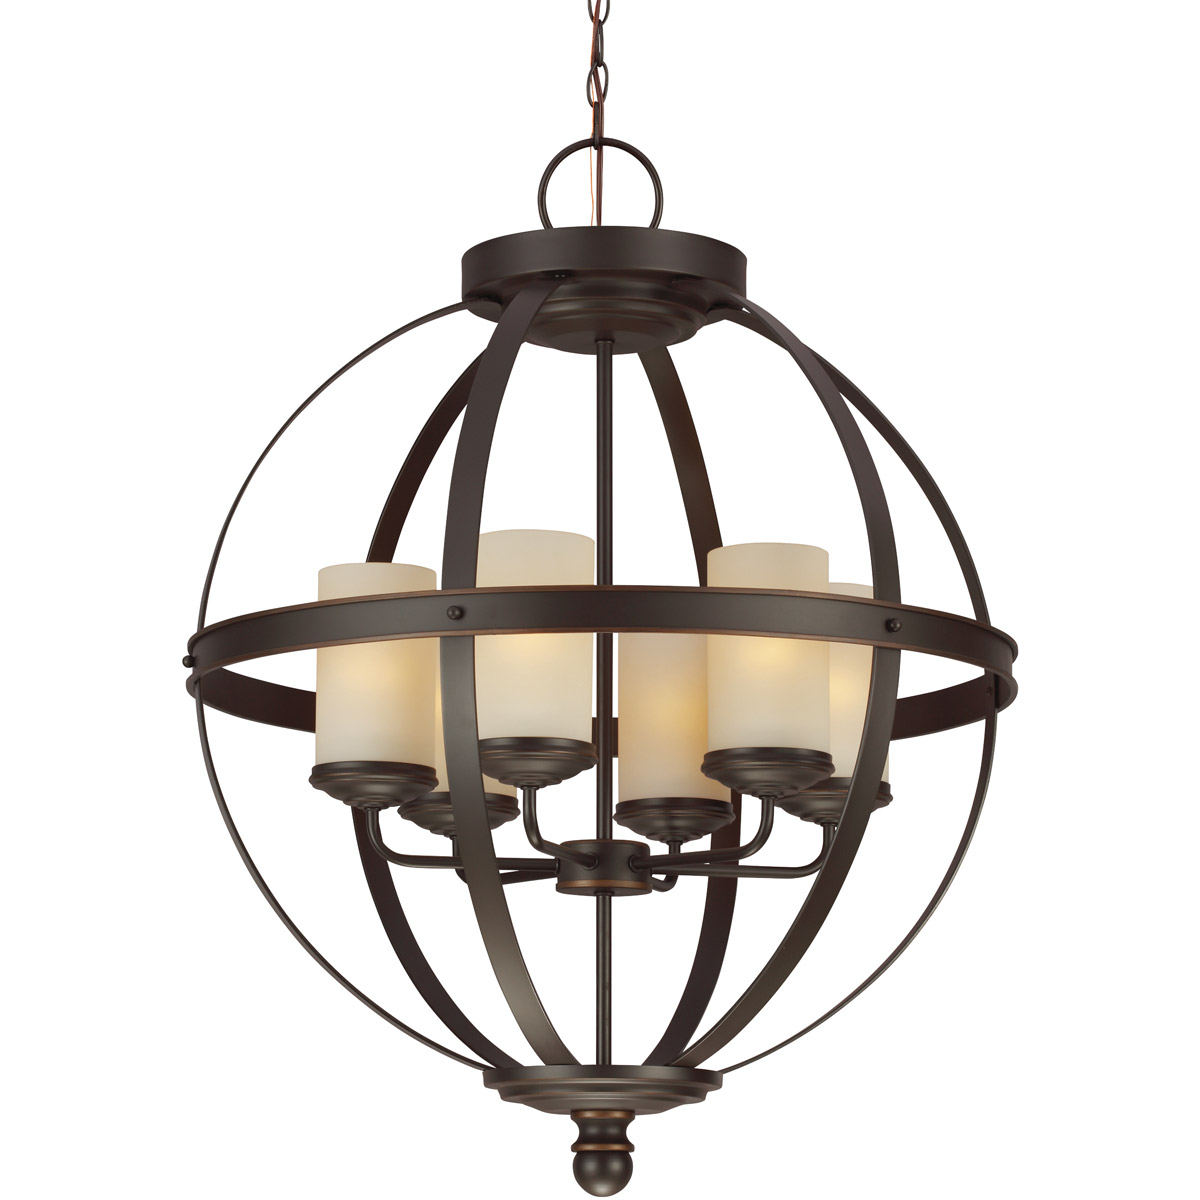 Sea Gull 3190406BLE-715 Sfera 6 Light 25 inch Autumn Bronze Chandelier Single-Tier Ceiling Light in Fluorescent photo